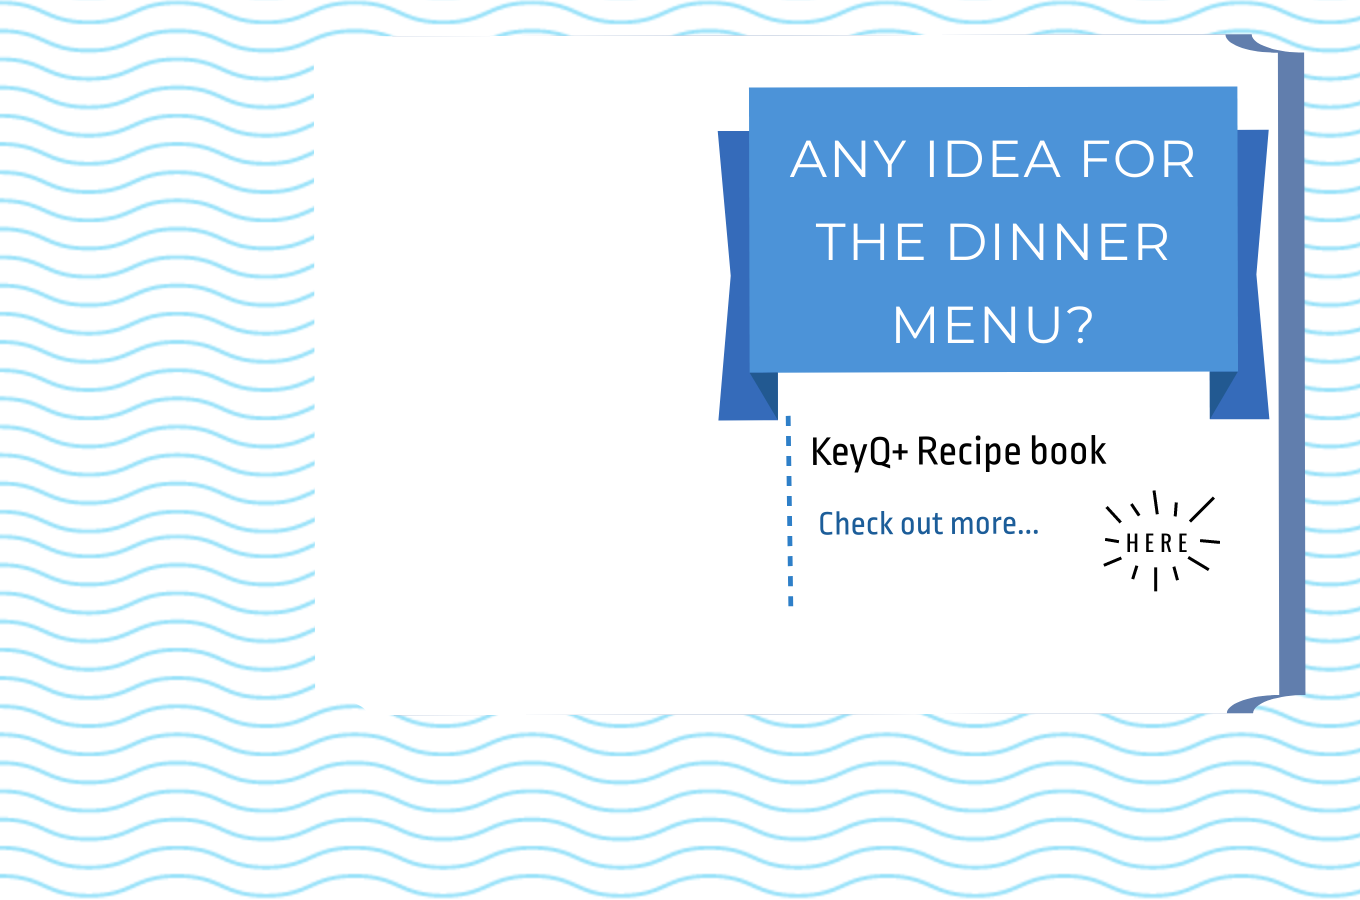 YOU NEED AN IDEA FOR YOUR DINNER MENU?